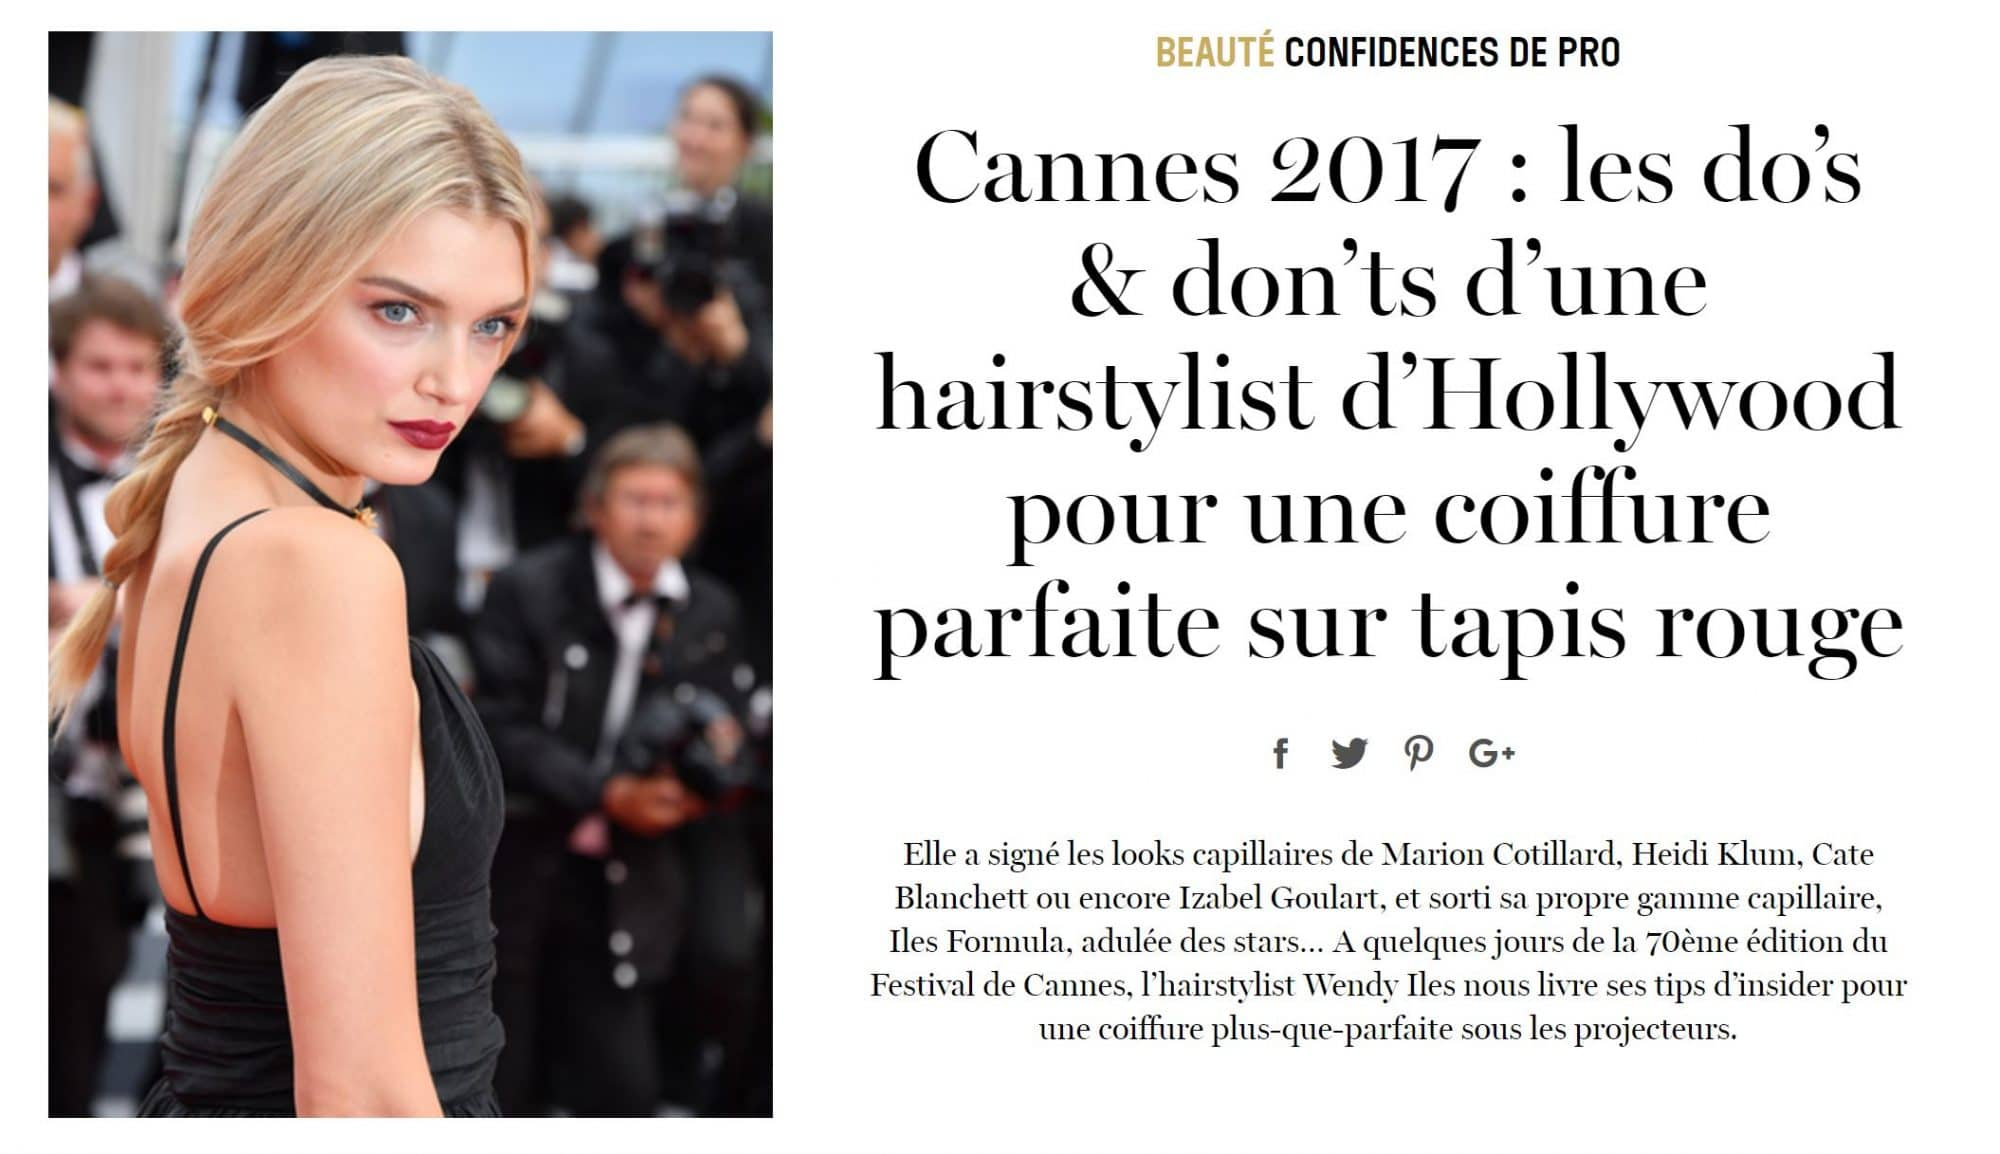 Cannes 2017 Do's & Dont's For Red Carpet Hair